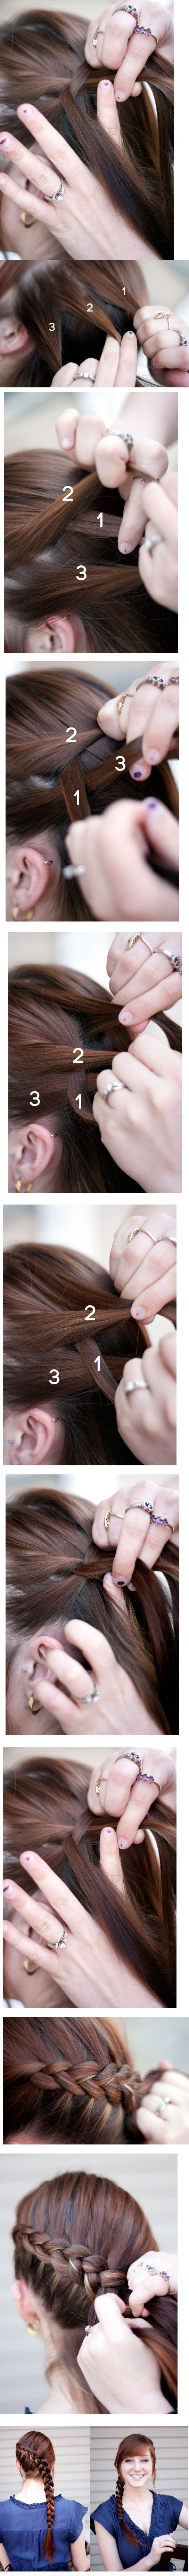 You know that strange side braid you see all over pinterest but no one posts a tutorial on how its done? well here it is